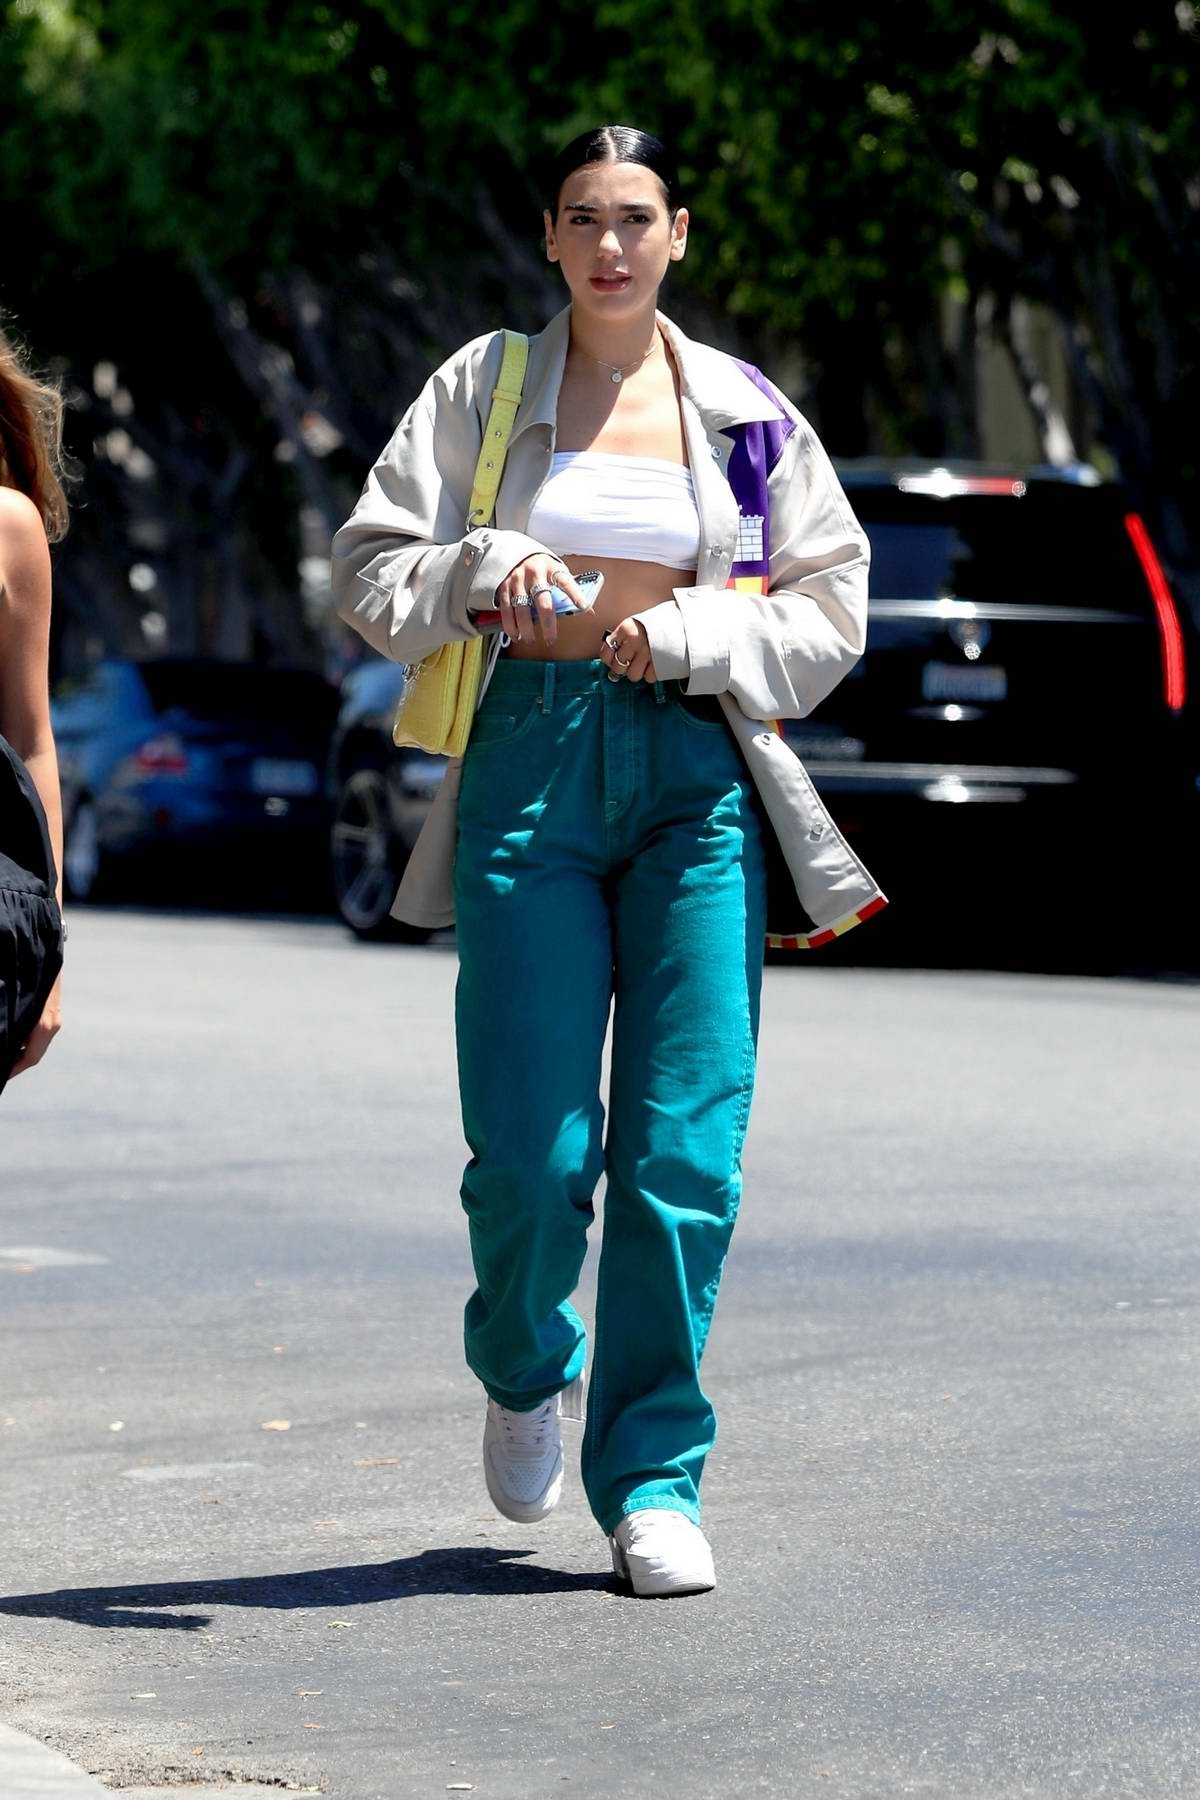 Dua Lipa rocks a white crop top and teal jeans with jacket while out for an iced drink at Alfred's in West Hollywood, Los Angeles